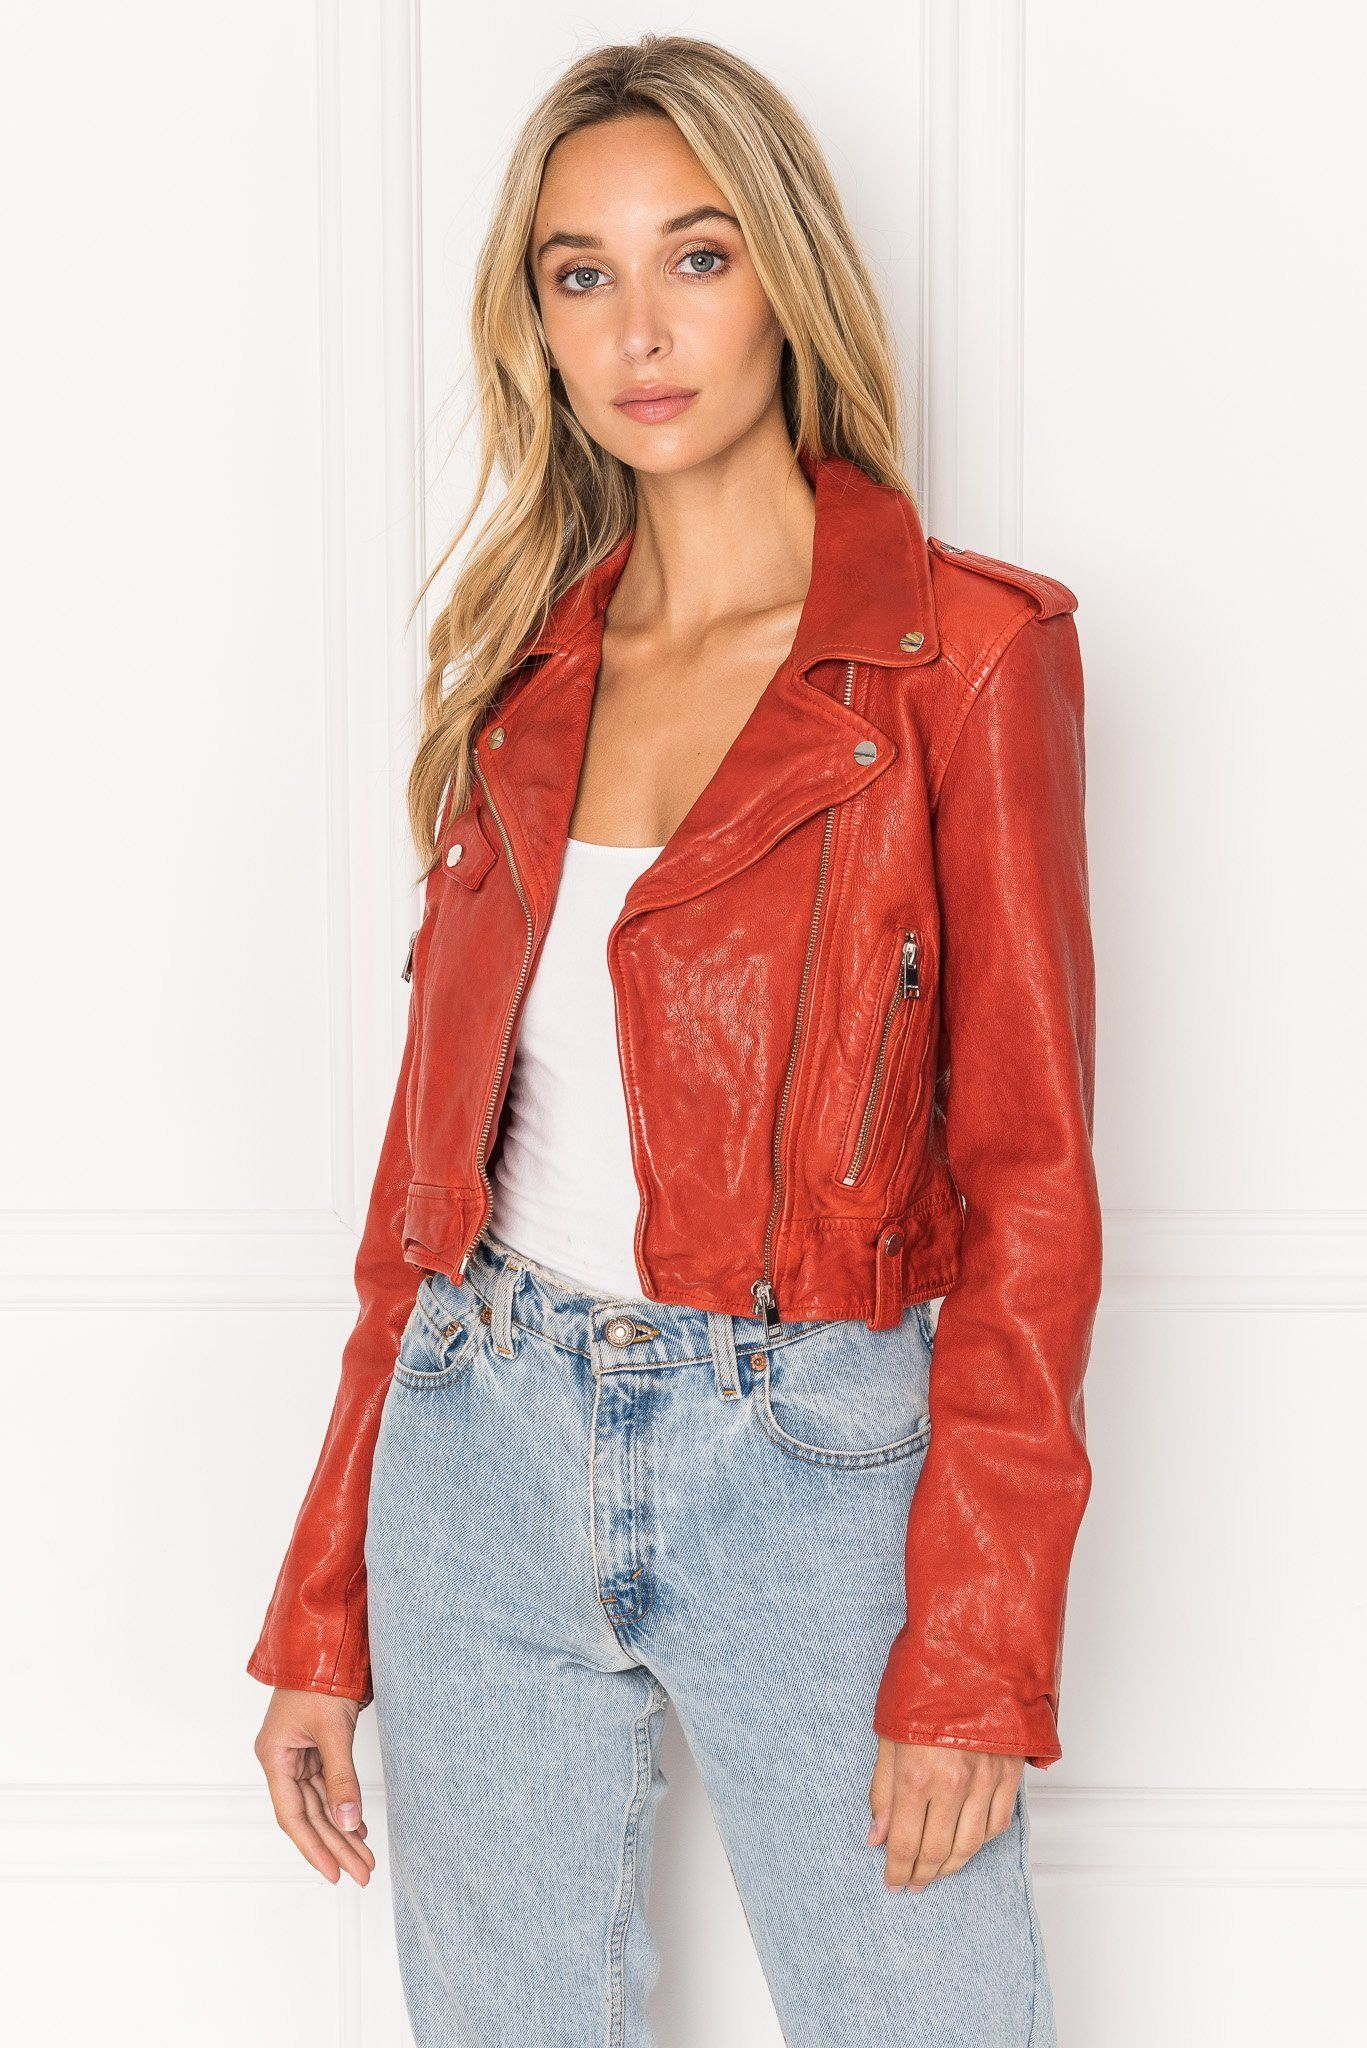 Lamarque Ciara Dark Red Washed Leather Crop Biker Jacket Red Fashion Outfits Cute Clothes For Women Fashion [ 2048 x 1367 Pixel ]